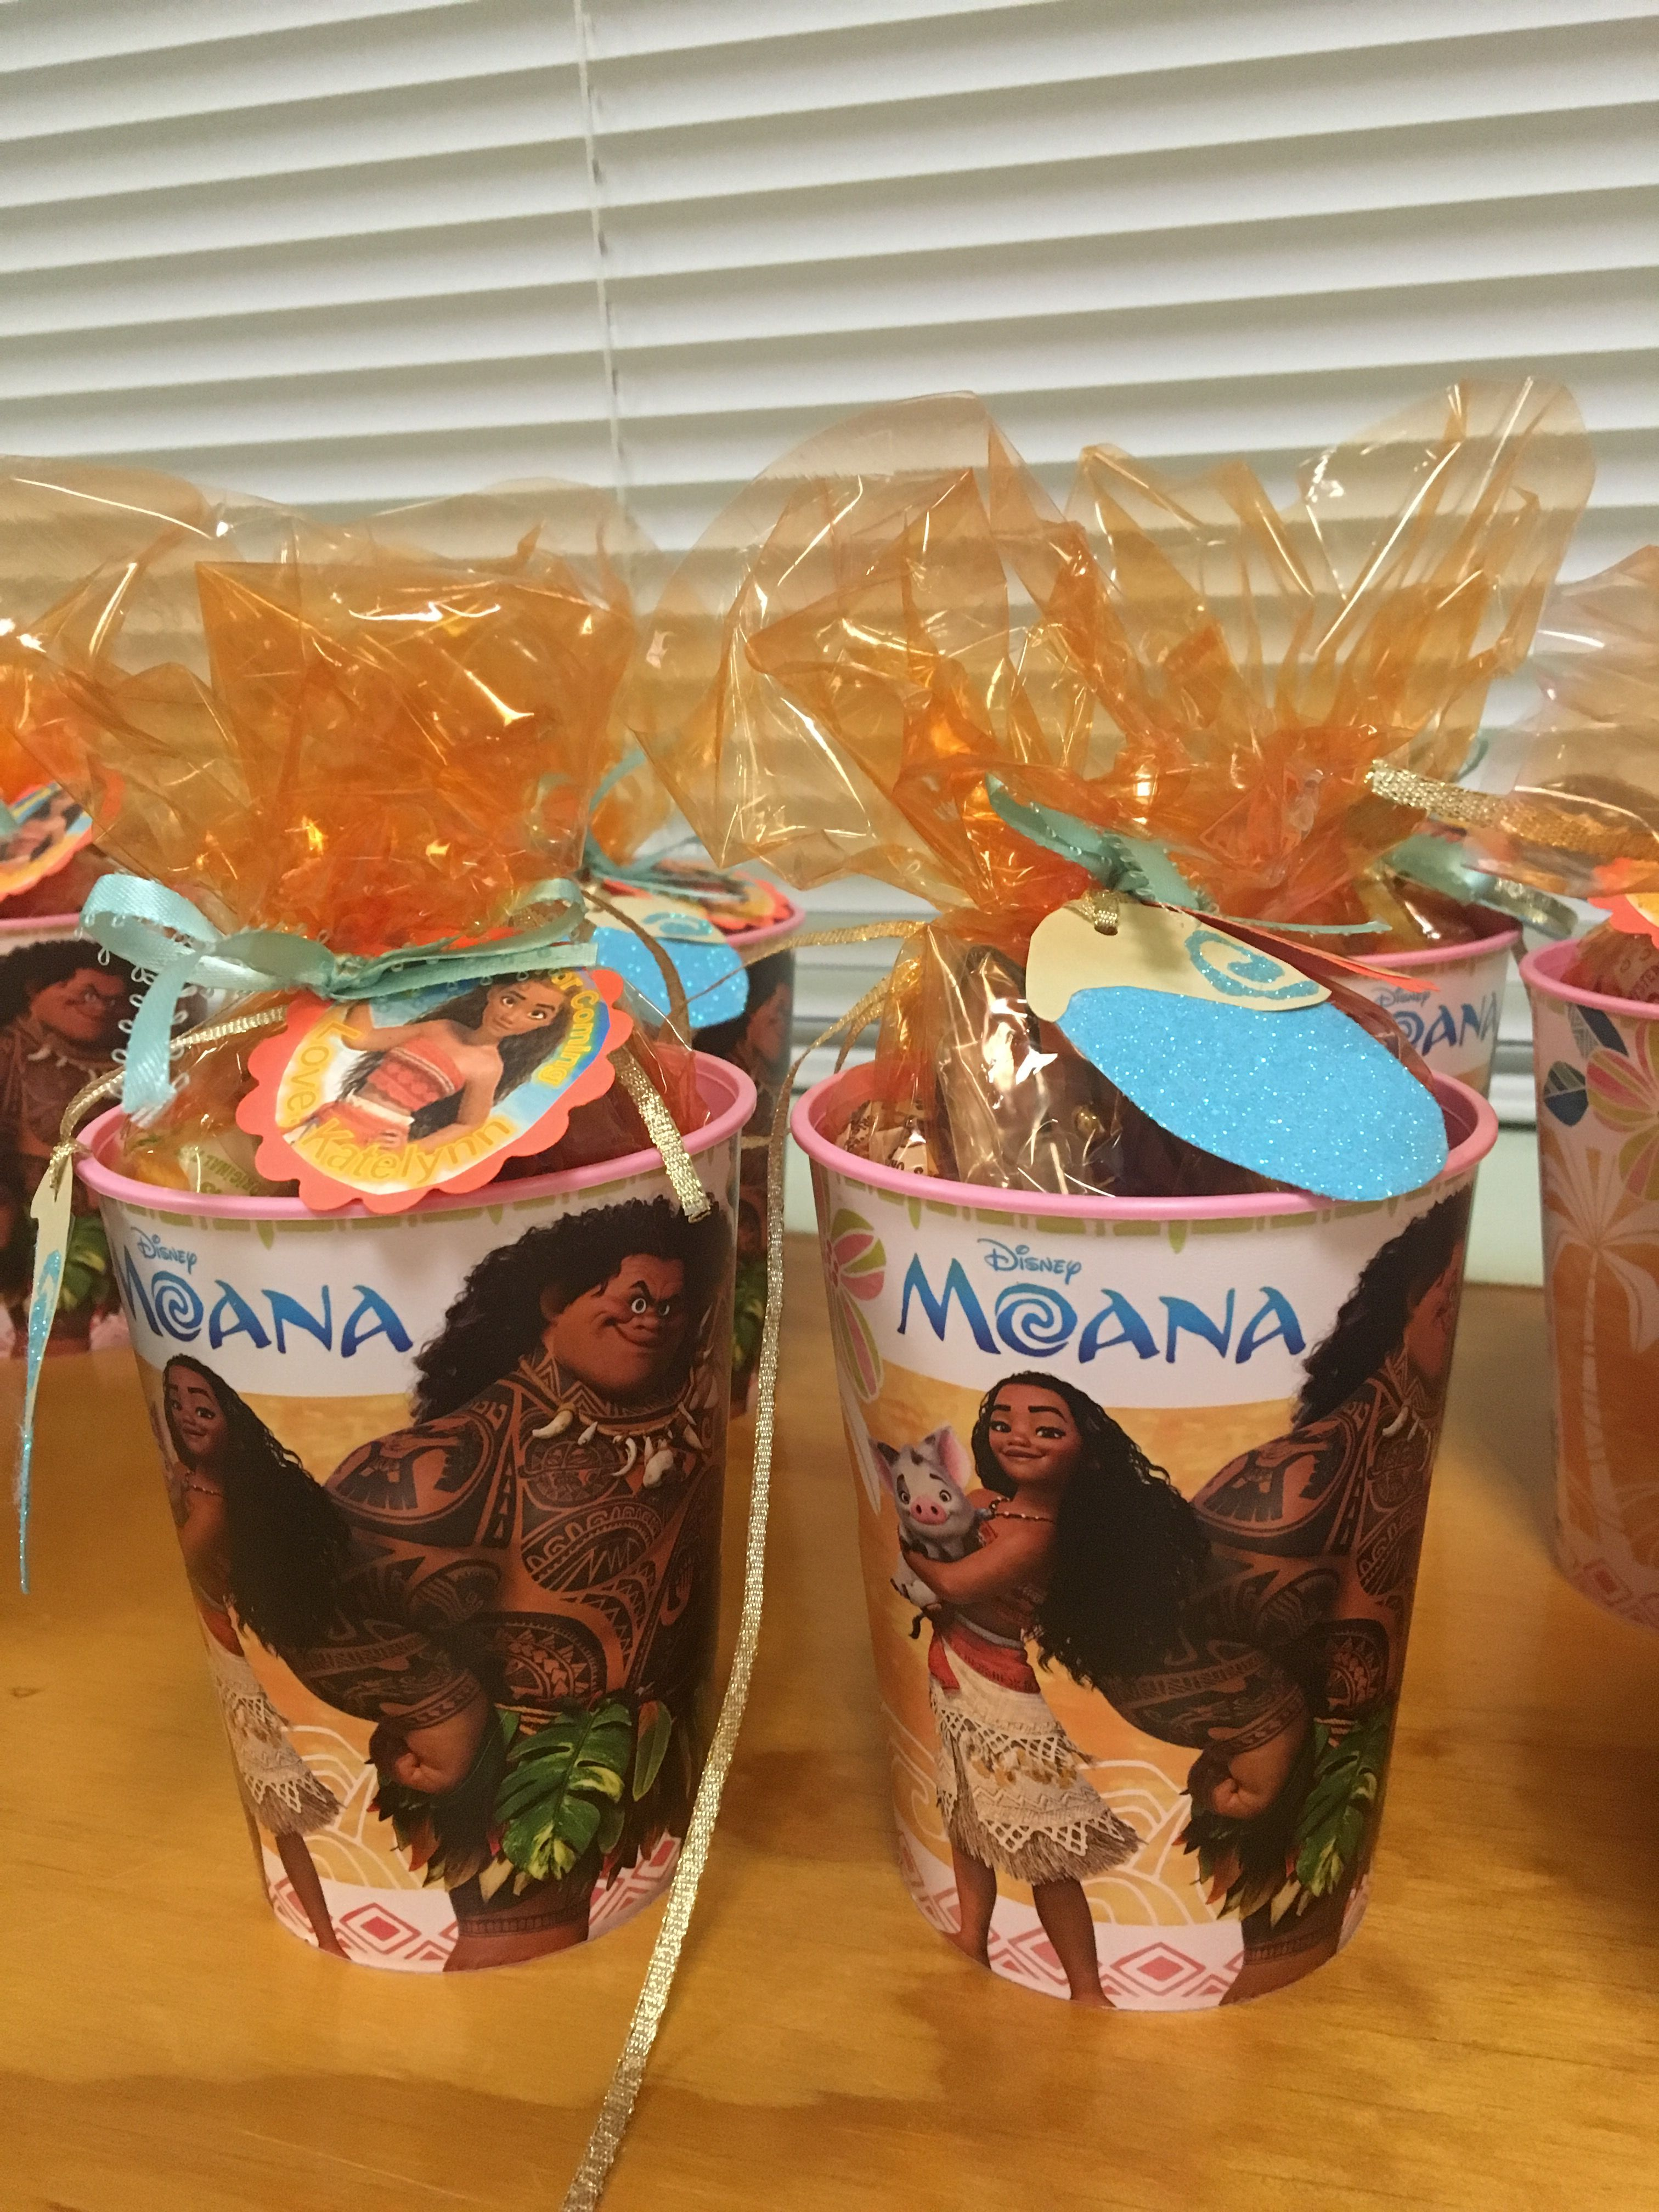 Moana Pictures Soaps Party  Moana Party Favors Kids Party